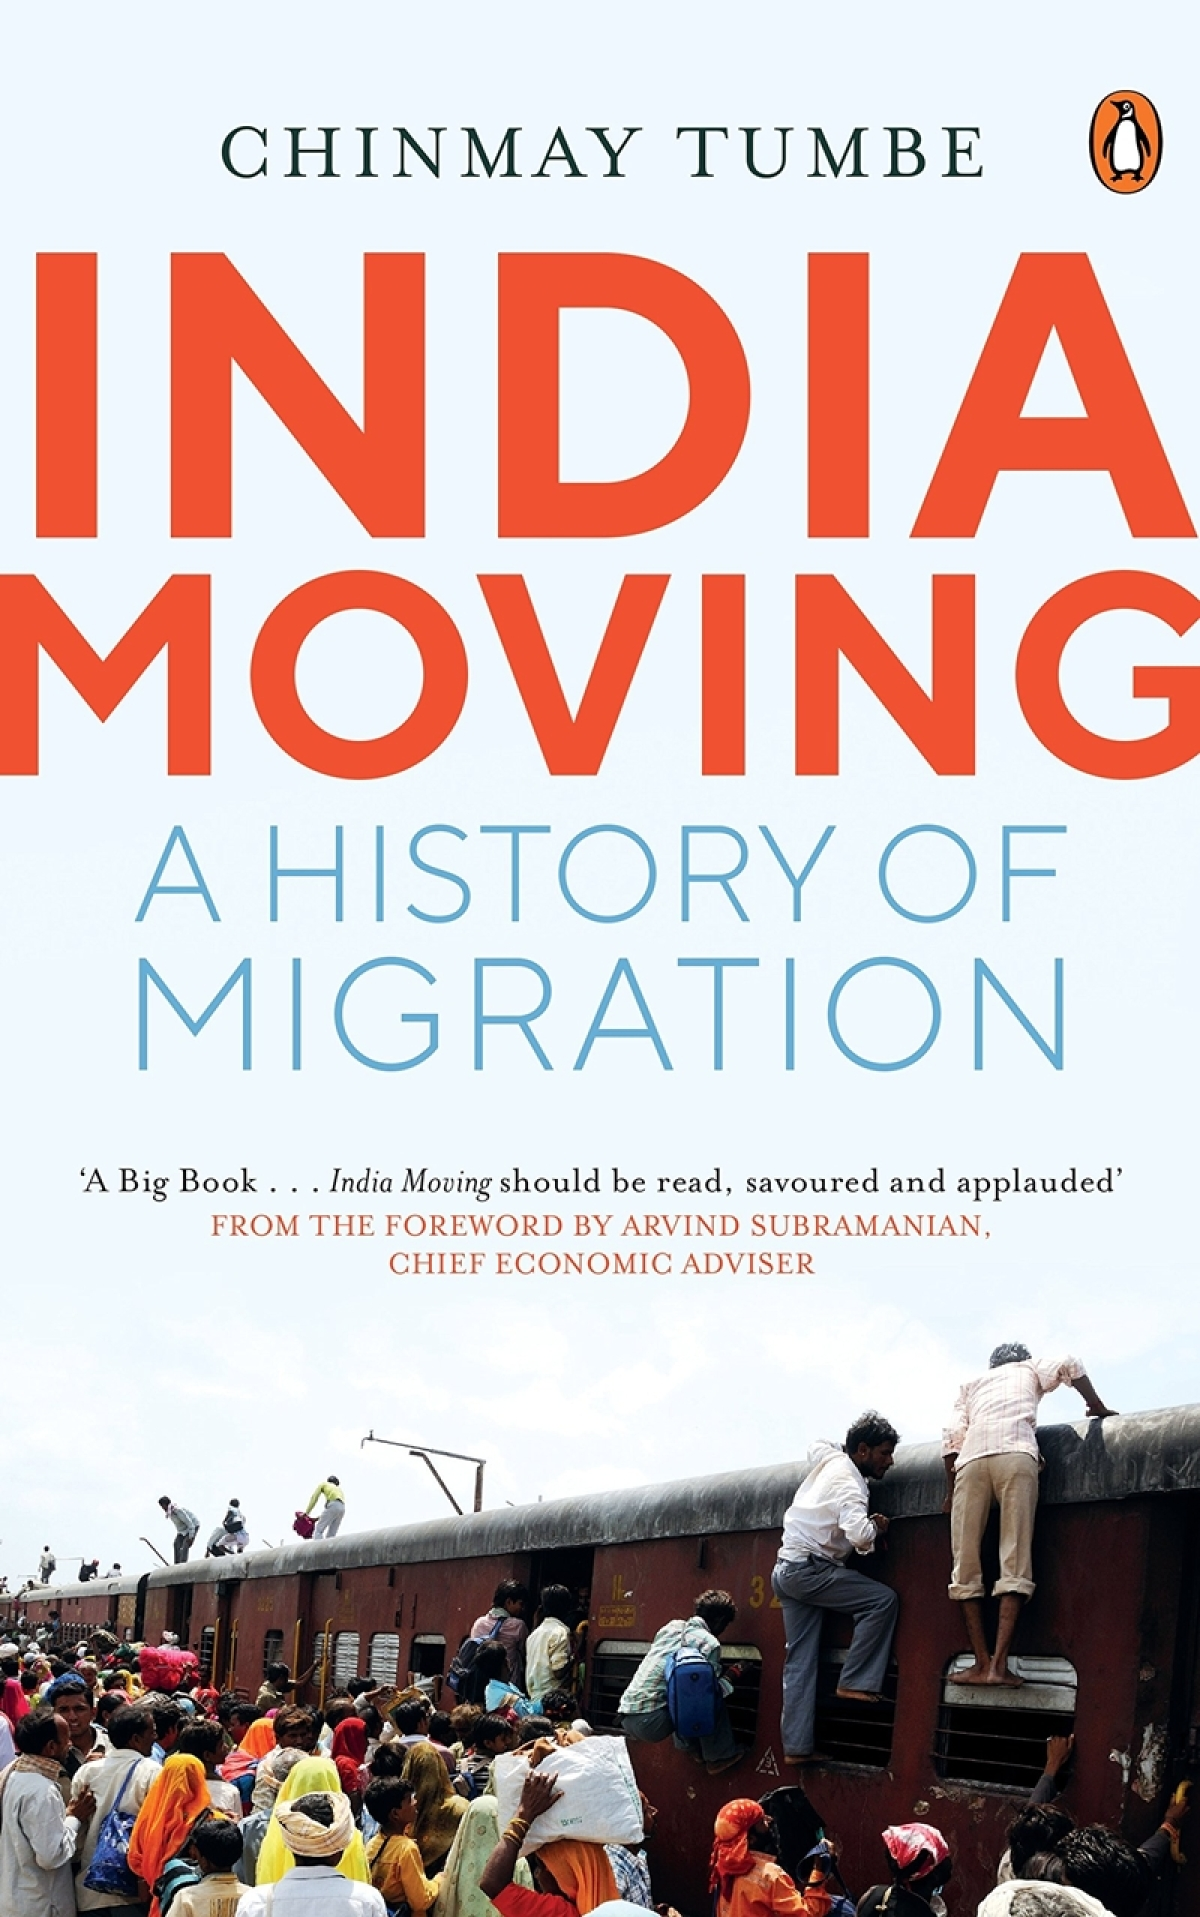 India Moving: A History of Migration by Chinmay Tumbe-Review